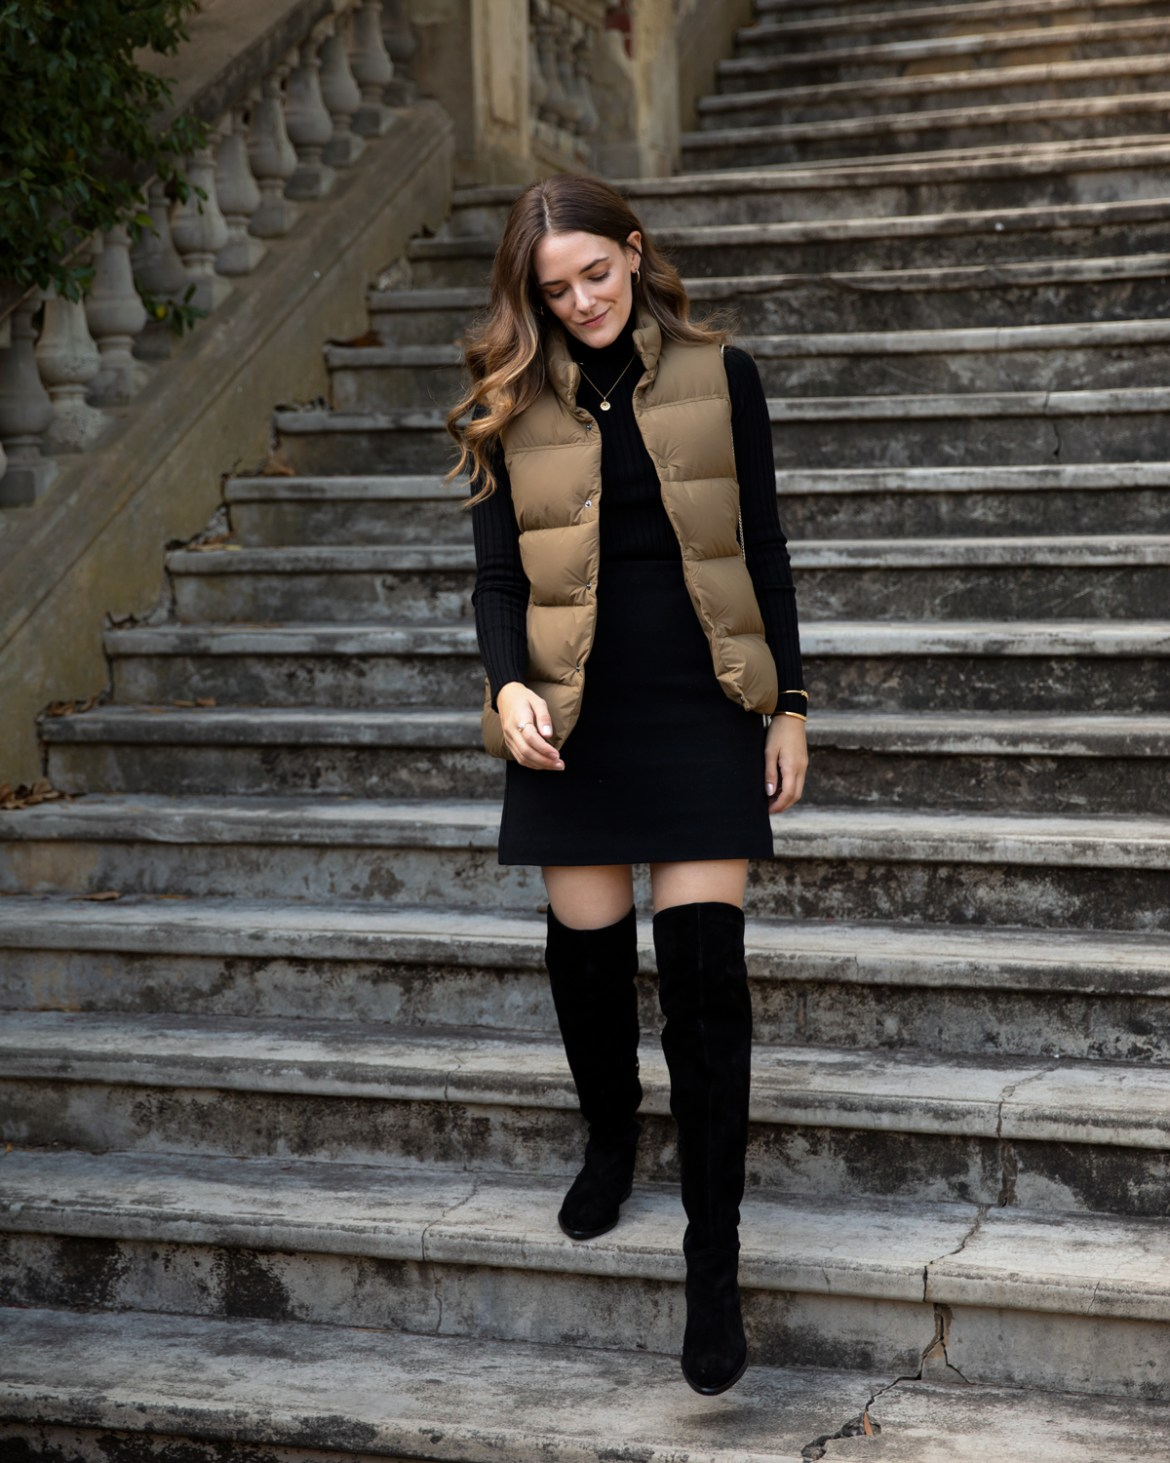 Uniqlo ULD vest outfit with black mini skirt and over the knee boots autumn outfit idea with Inspiring Wit fashion blogger Jenelle